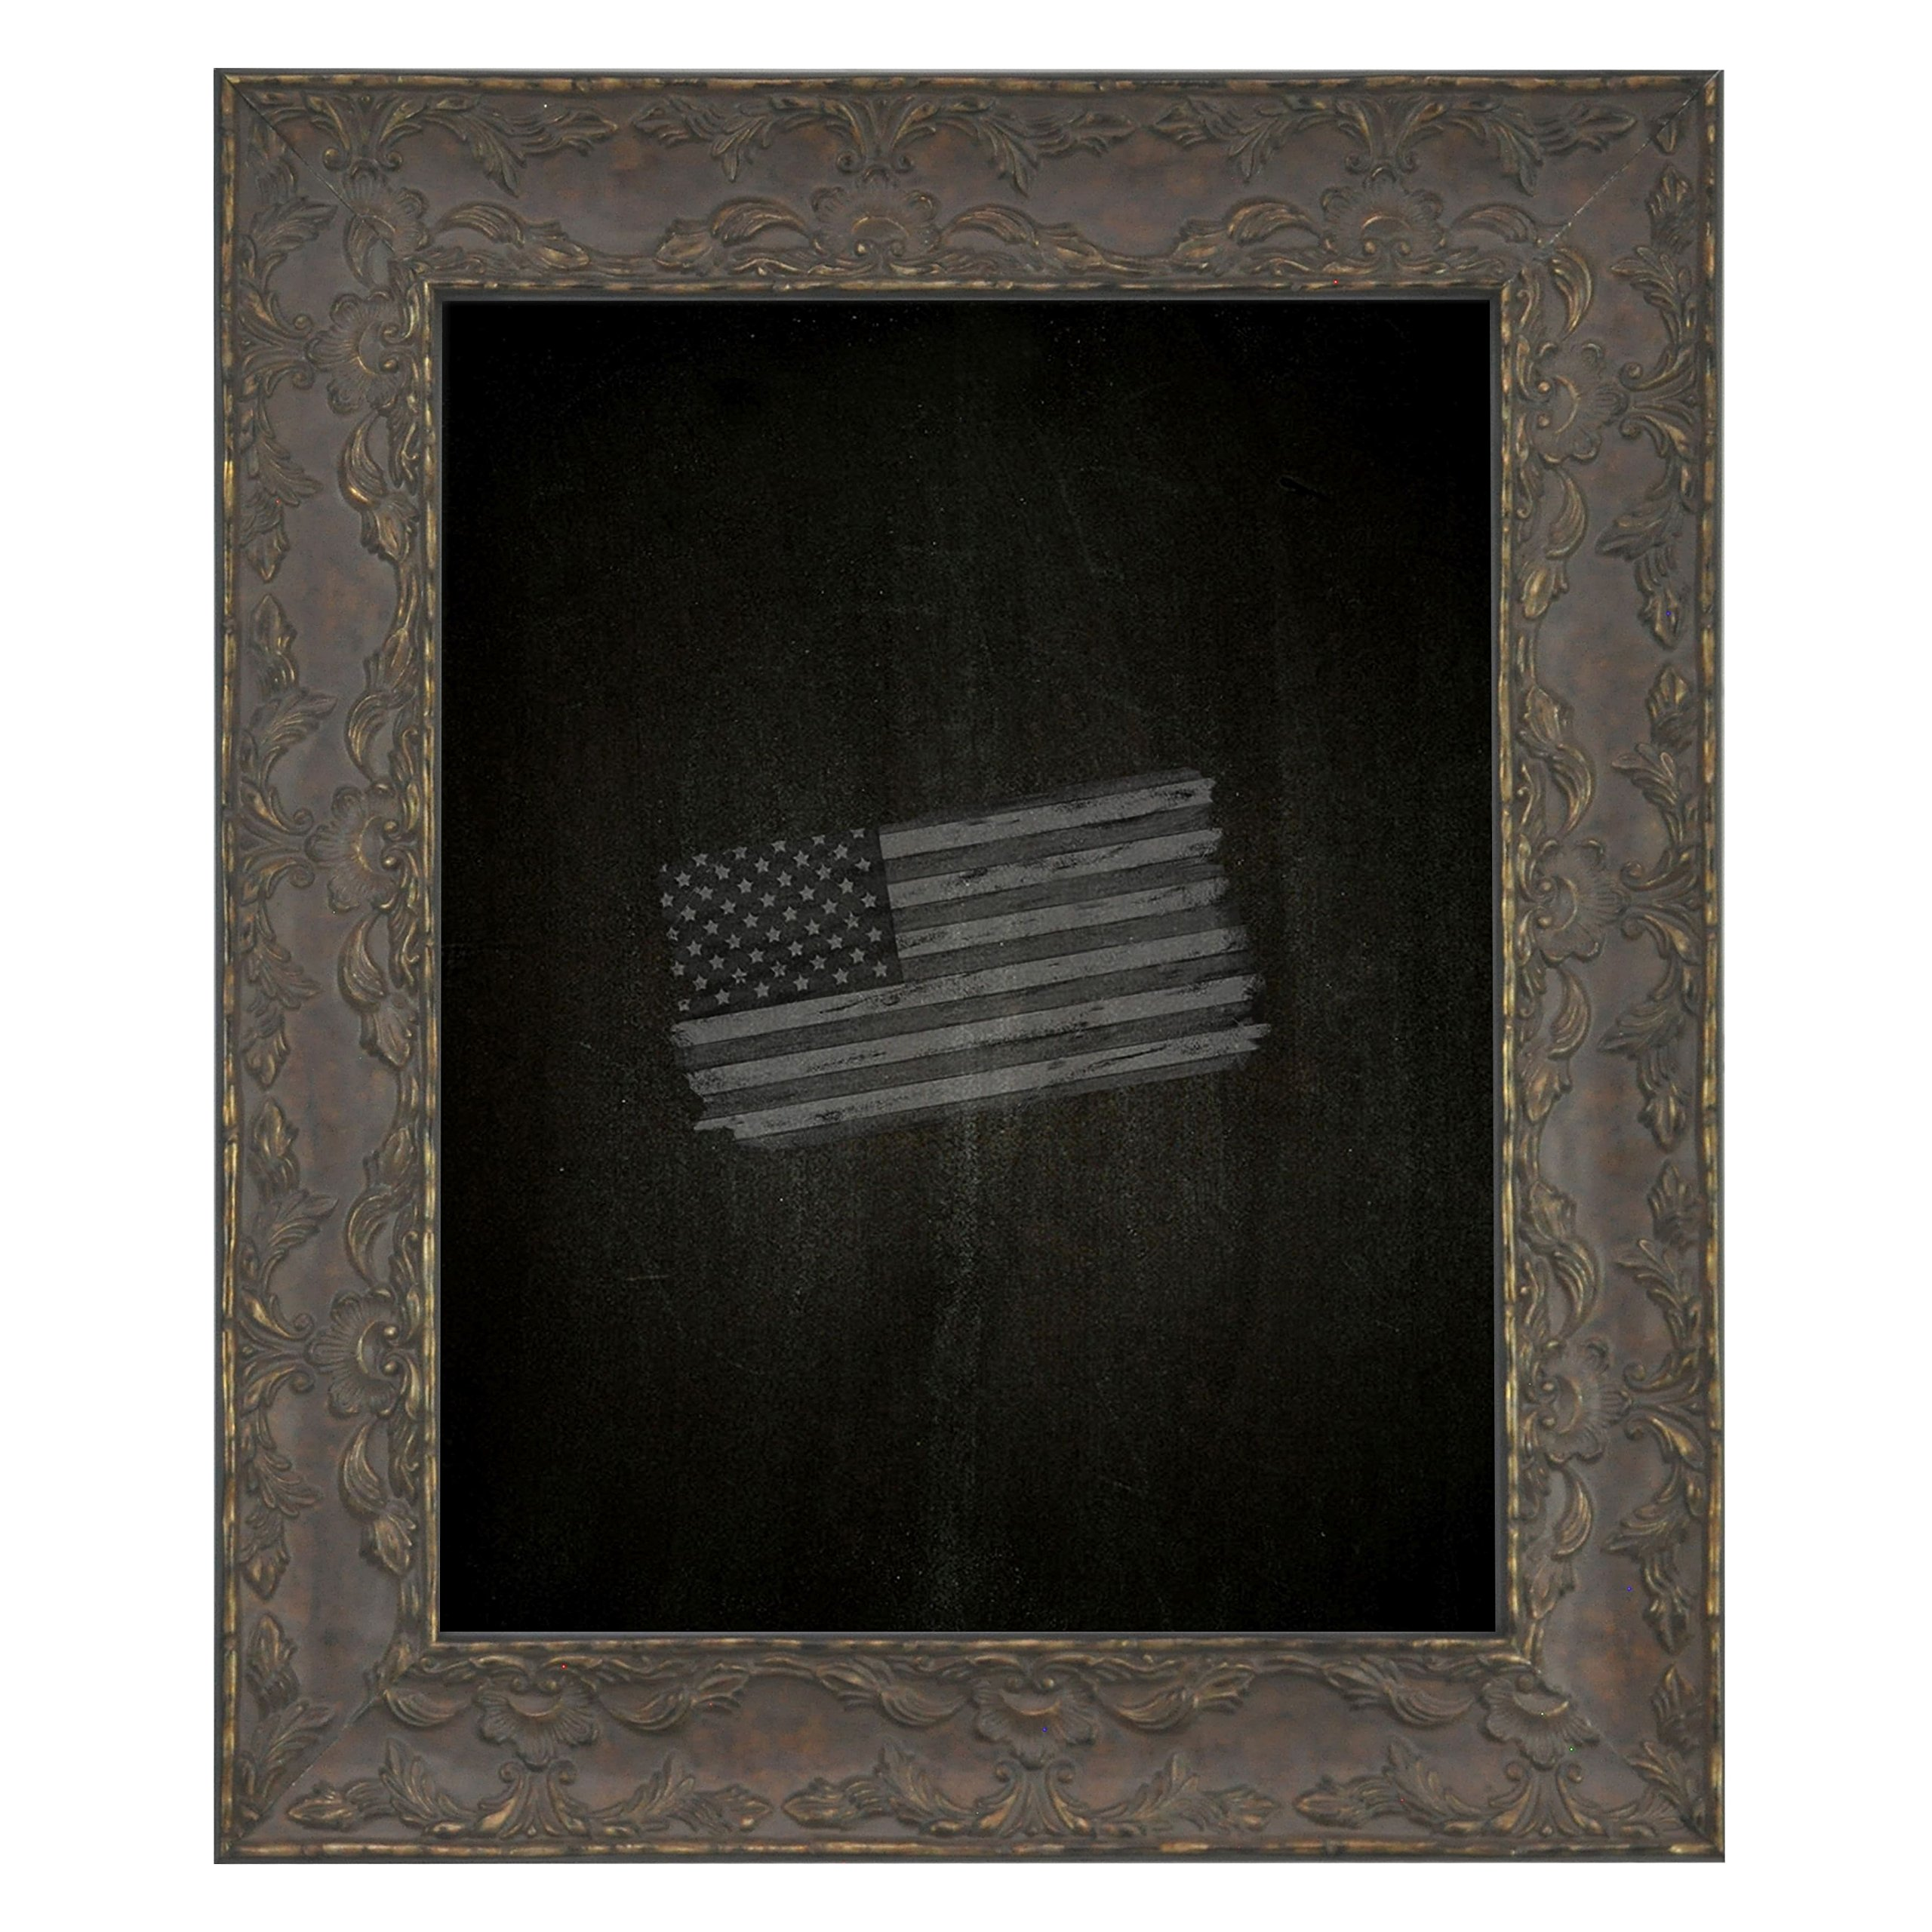 Rayne Mirrors American Made Rayne Maclaren Brown Blackboard/ Chalkboard Exterior Size: 18 x 42 by Rayne Mirrors